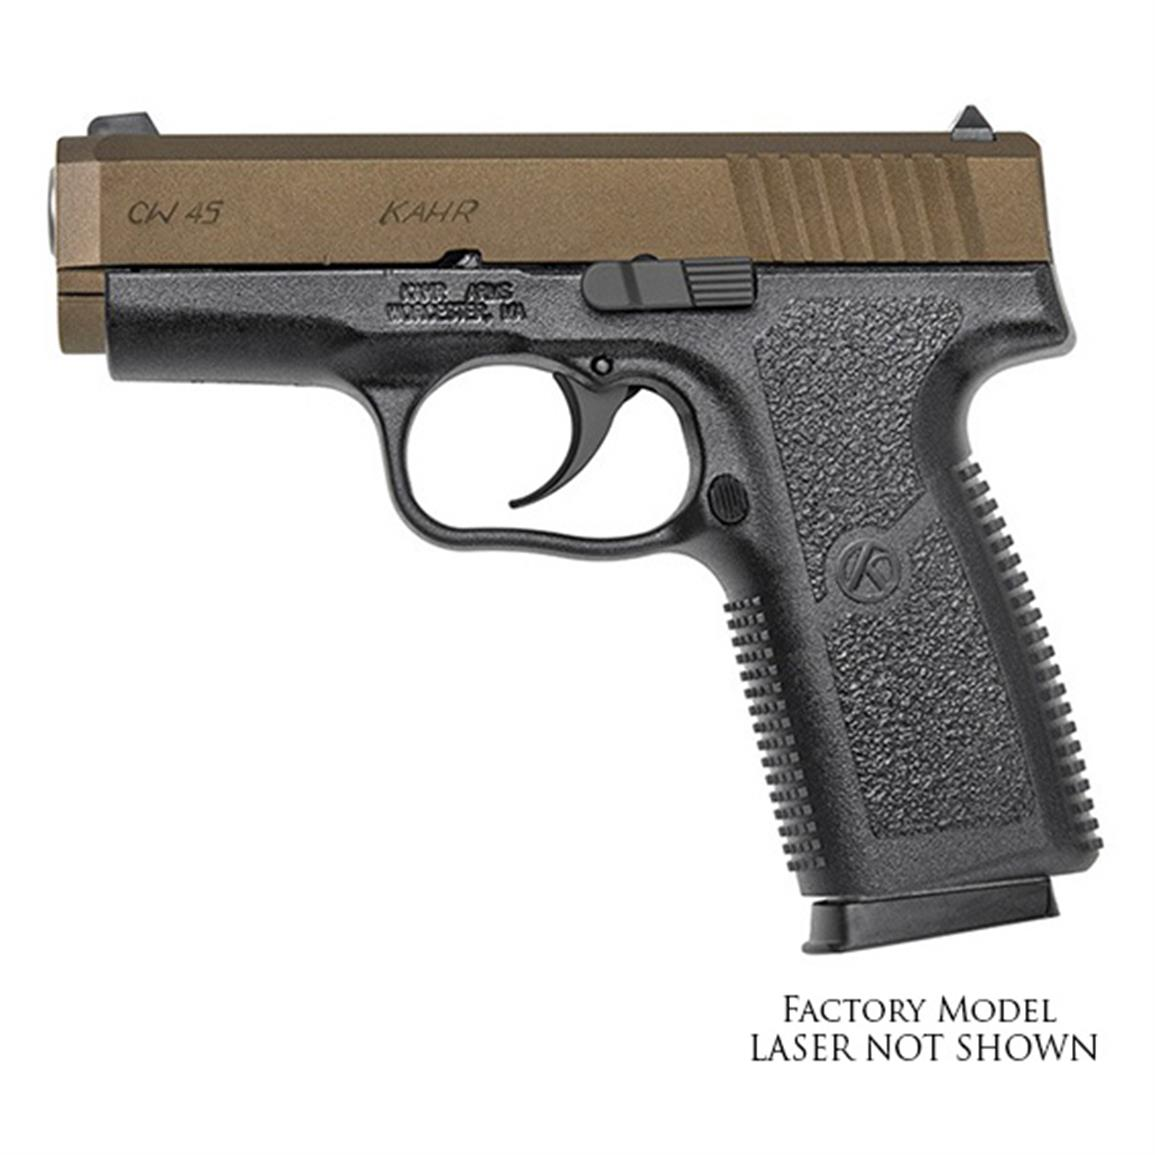 "Kahr CW45 Supcompact, Semi-Automatic, .45 ACP, 3.6"" Barrel, 6+1 Rounds"